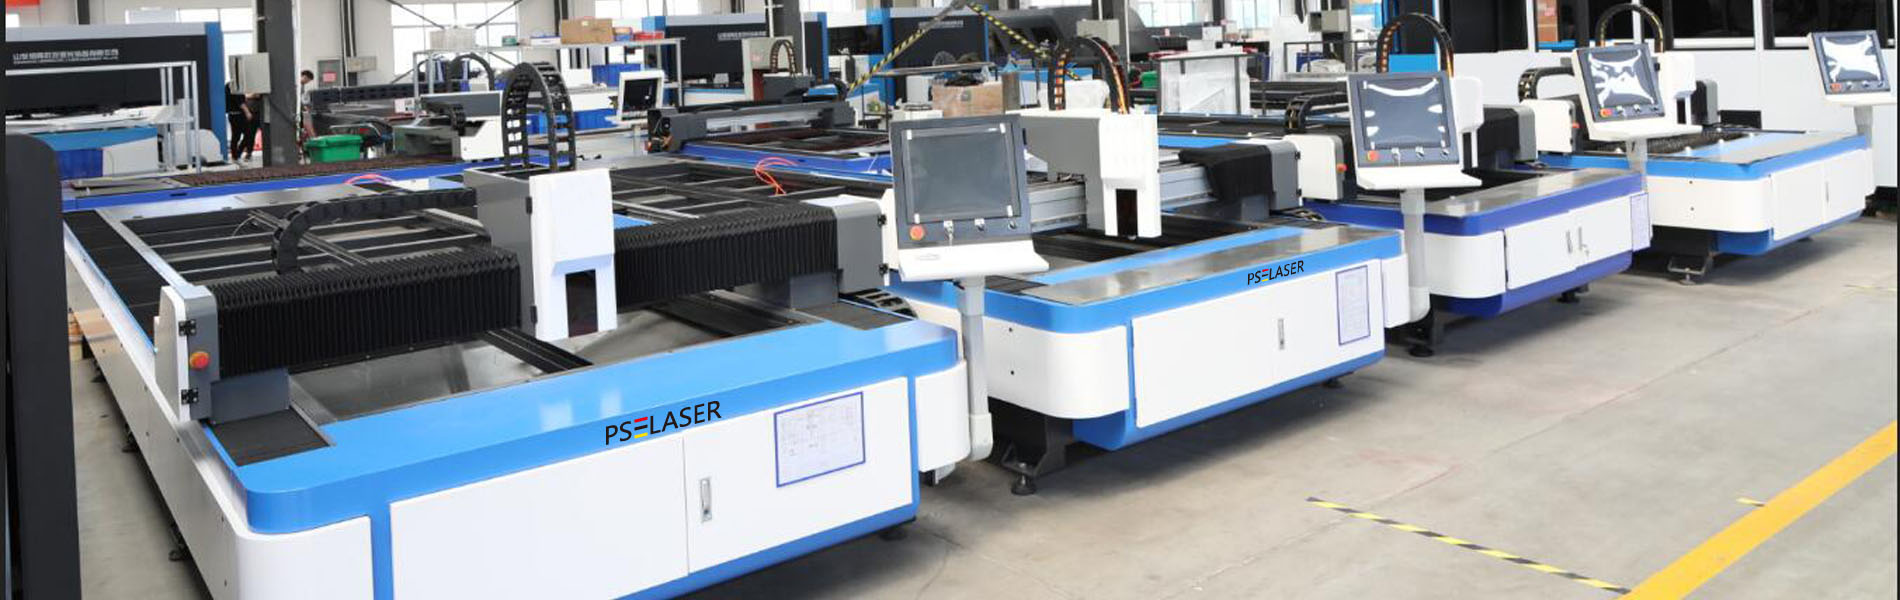 Open Type Fiber Laser Cutting Machine